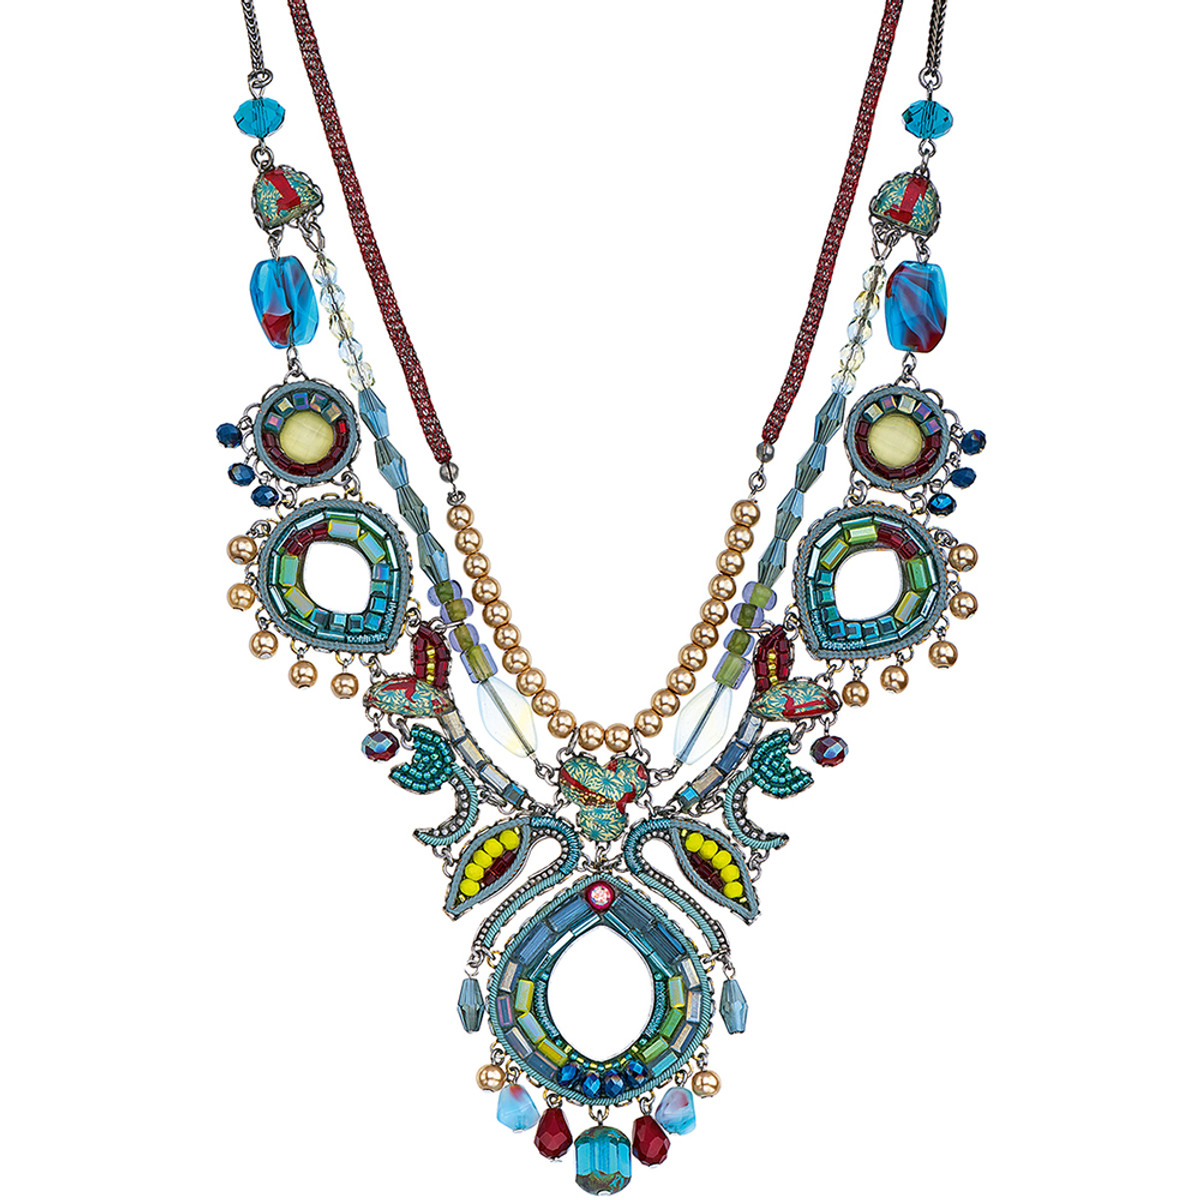 Ayala Bar Turquoise Crown Limited Edition Necklace